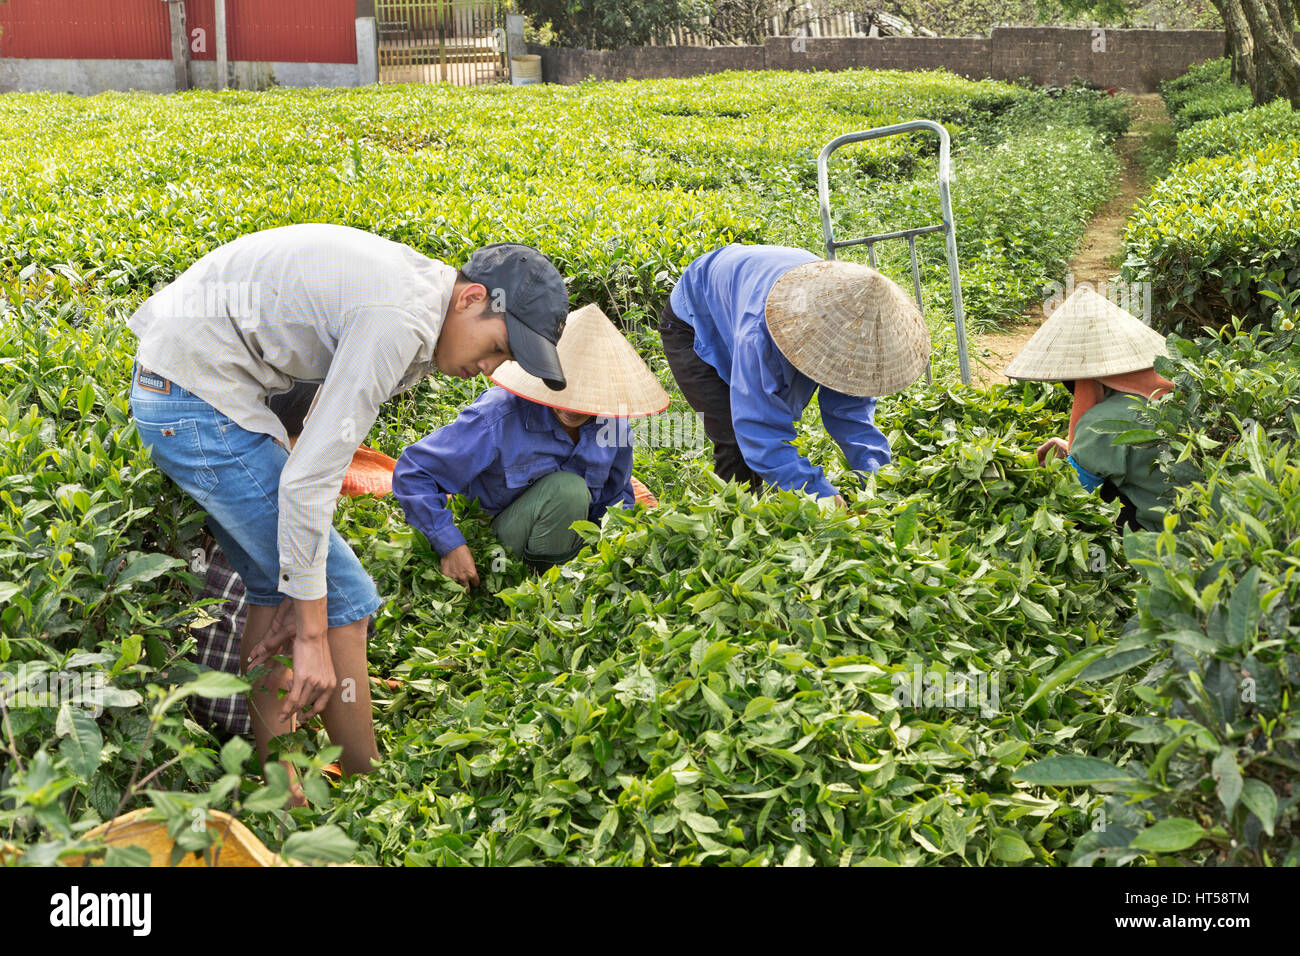 Field workers sorting harvested green tea,  Moc Chau, Son La  Province. - Stock Image